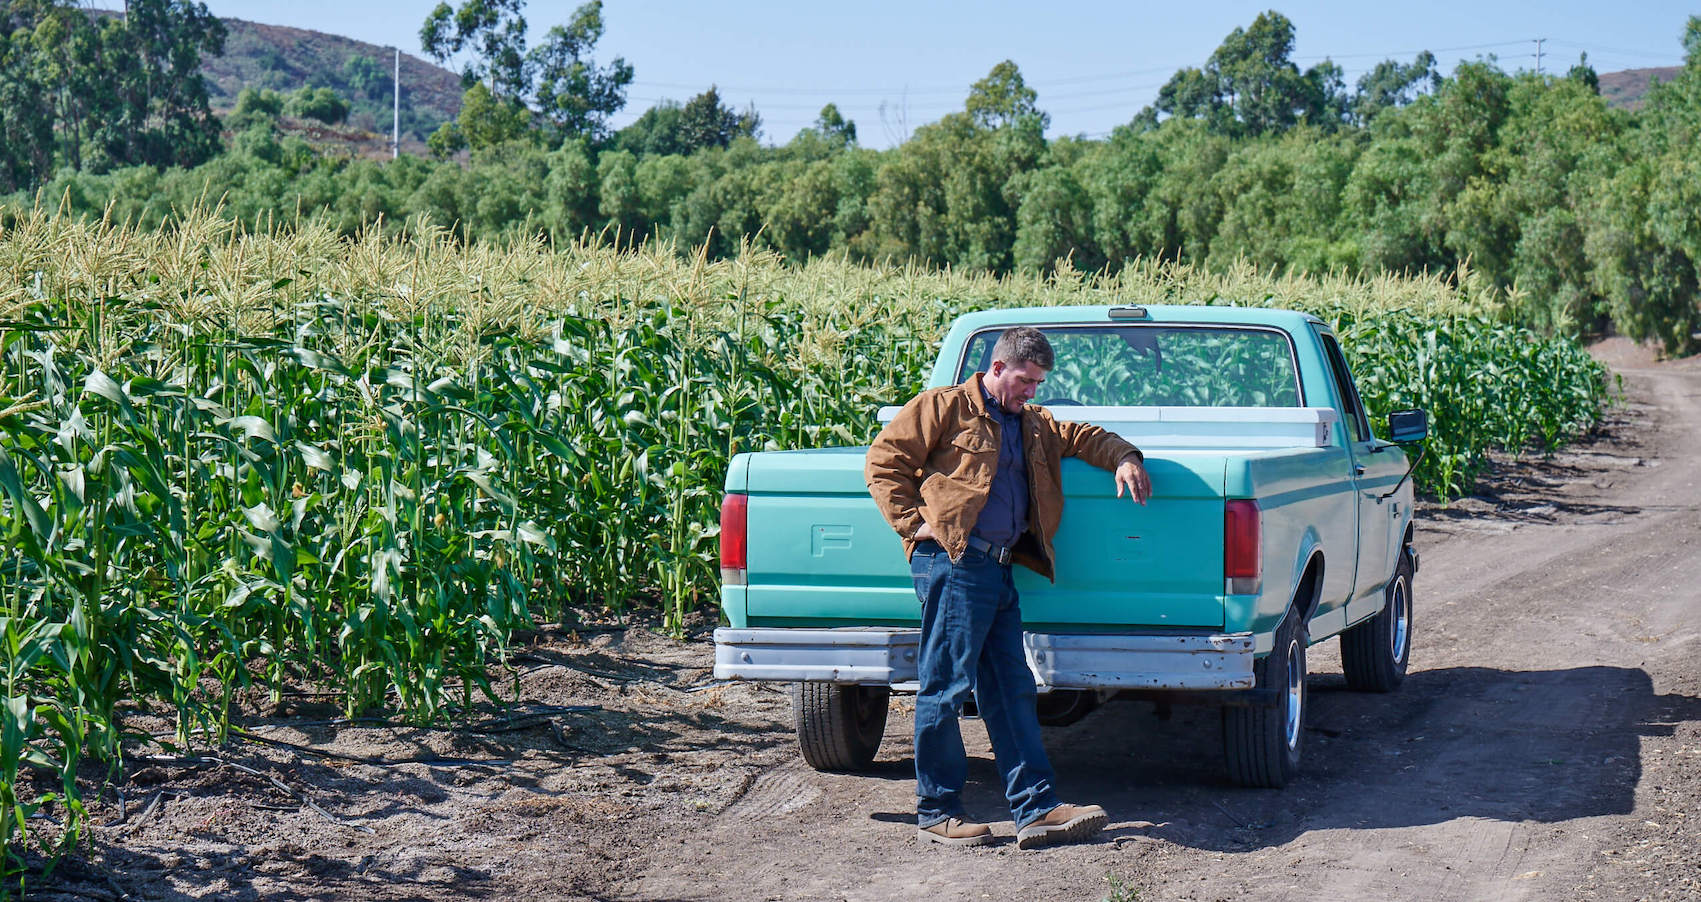 Farmer ready to fly his drone